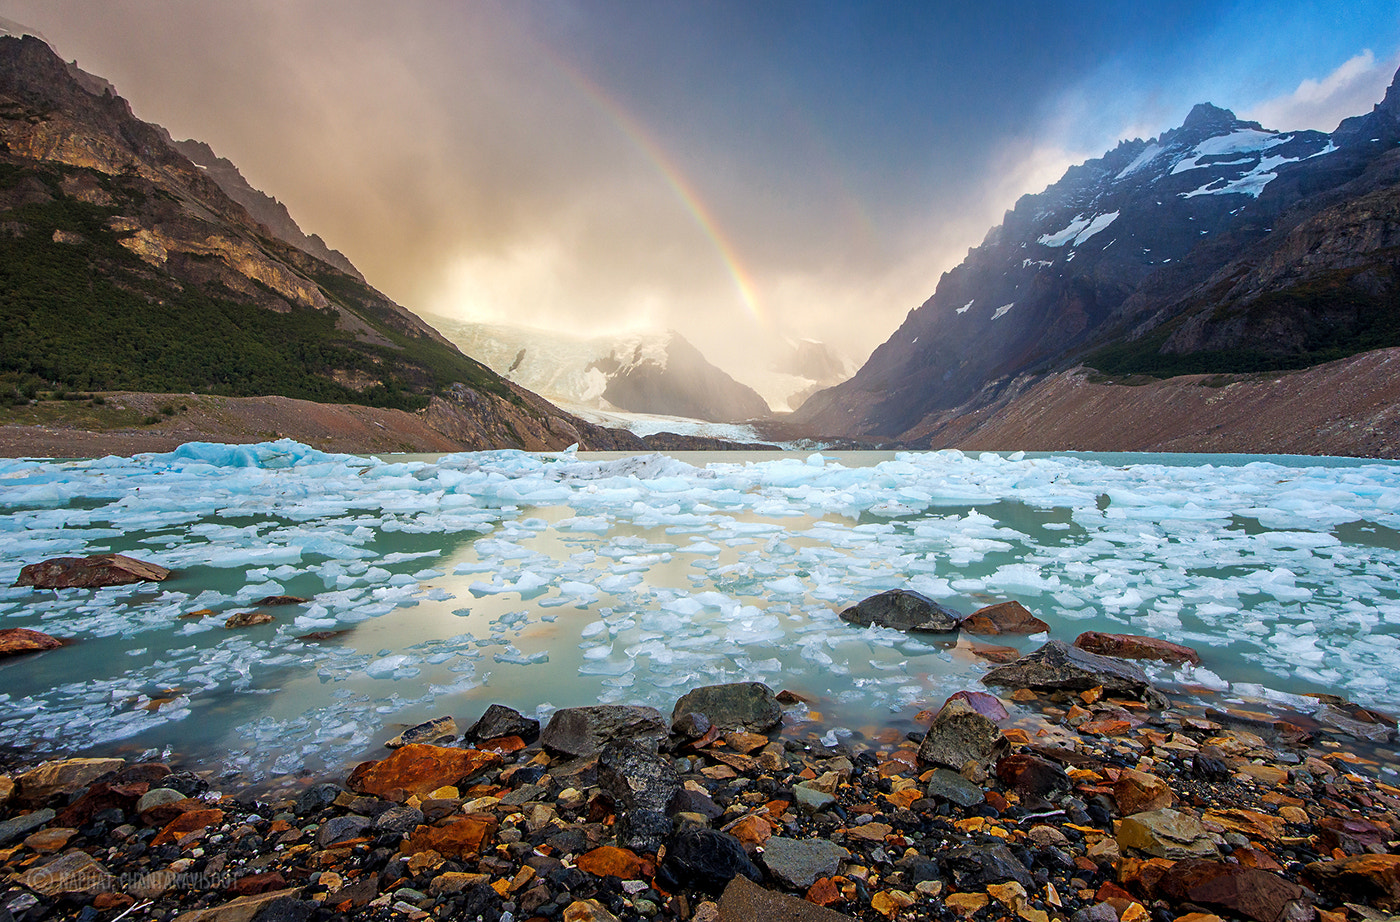 Photograph Laguna Torre with Rainbow by Nae Chantaravisoot on 500px